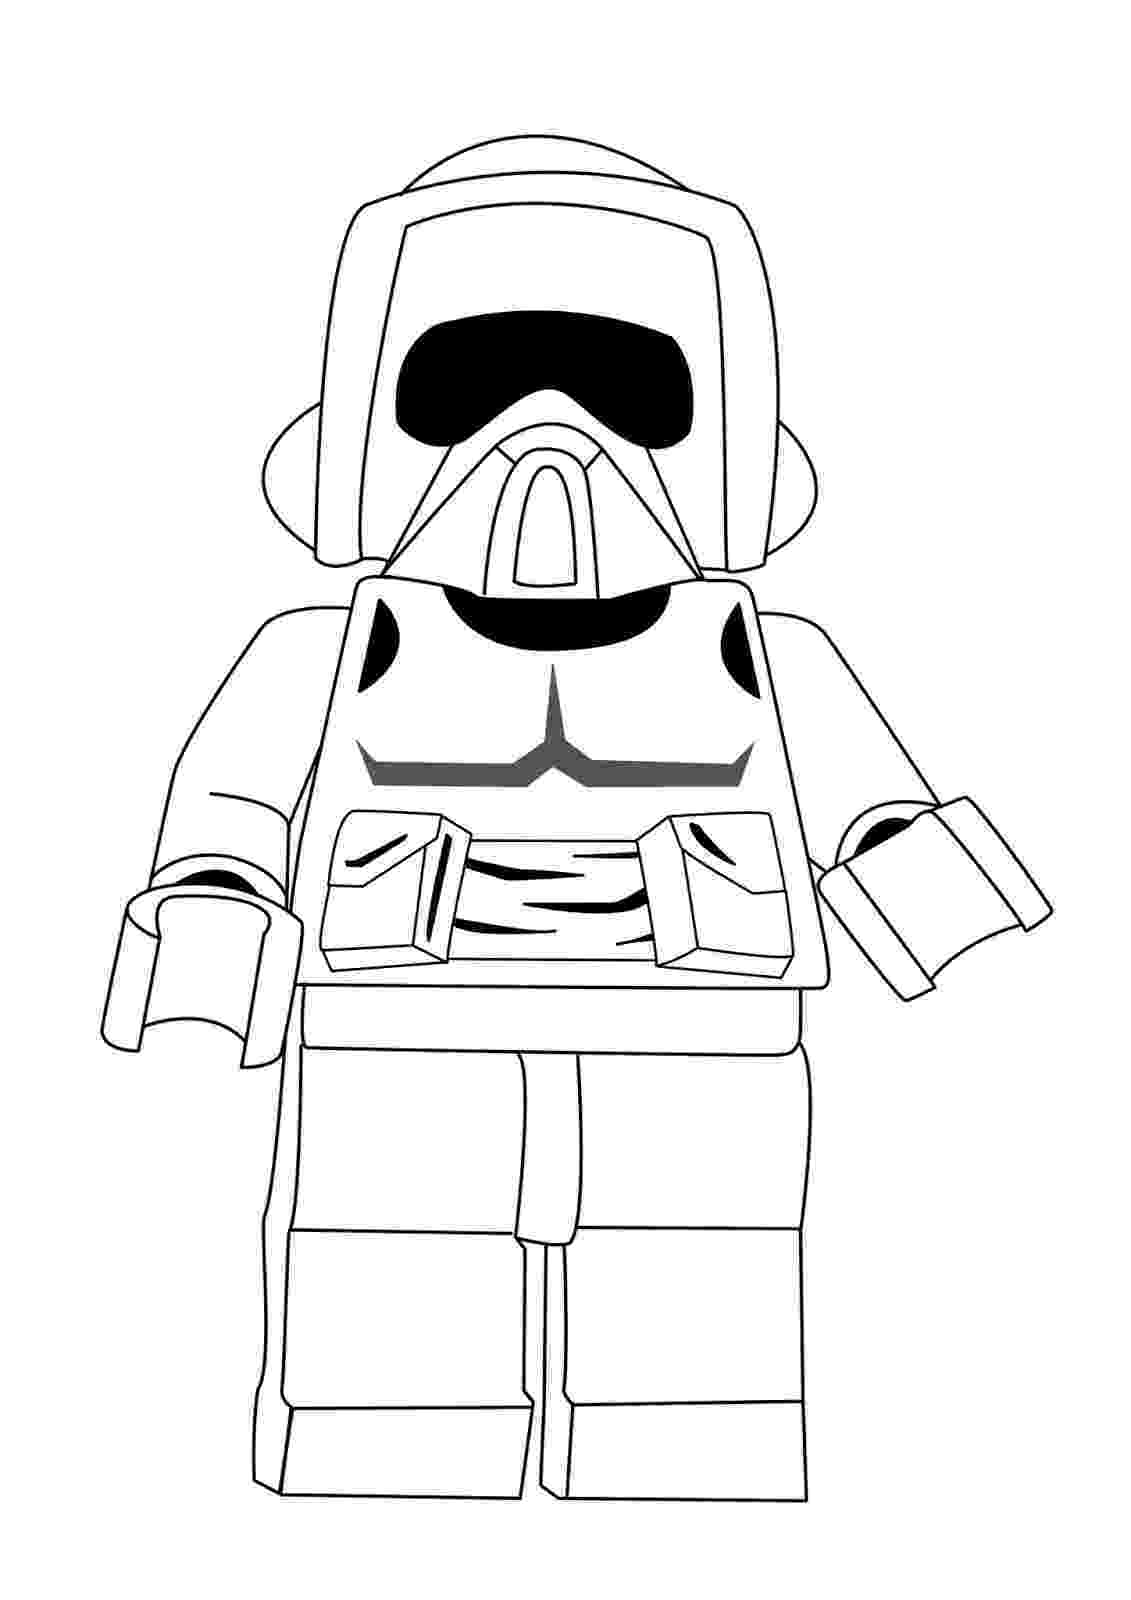 colouring pages lego star wars free printable lego coloring pages for kids cool2bkids colouring pages wars star lego